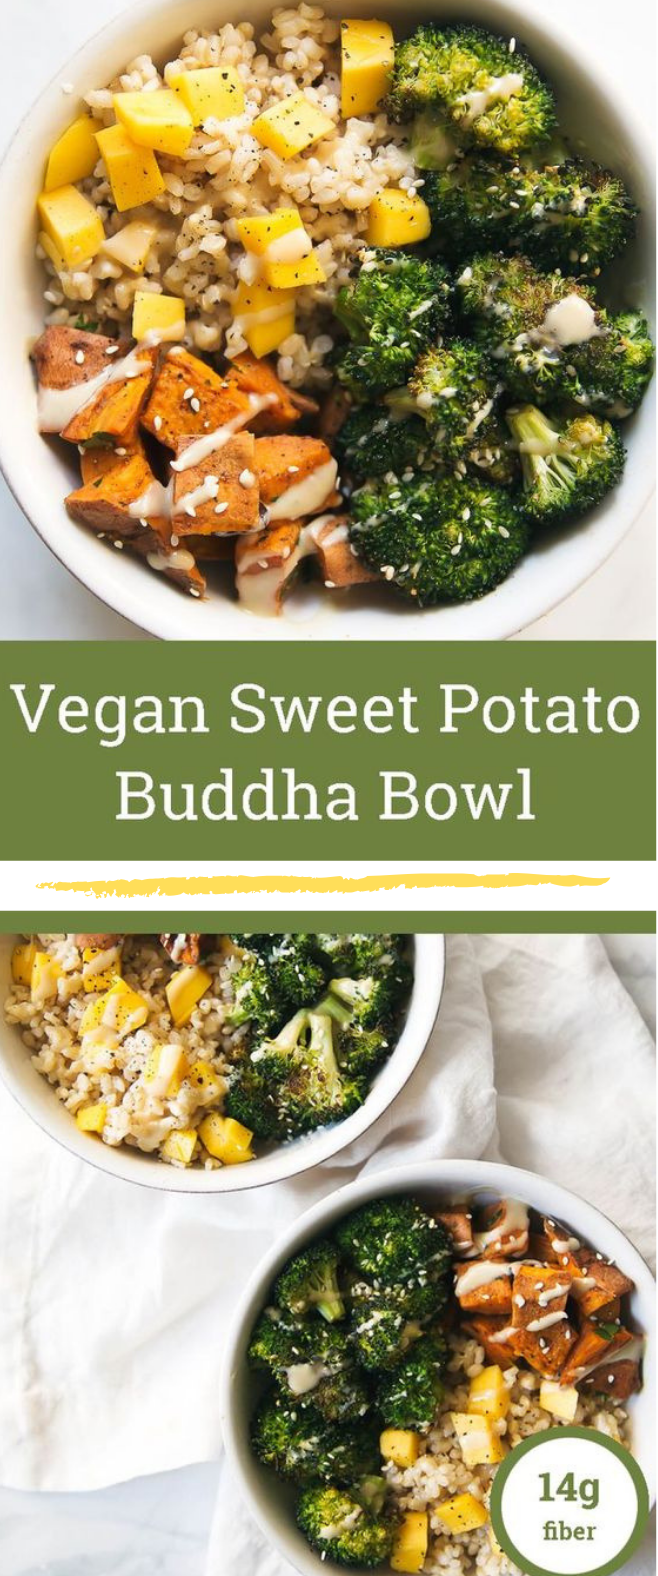 Vegan Sweet Potato Buddha Bowls with Almond Butter Dressing #vegan #sweetpotato